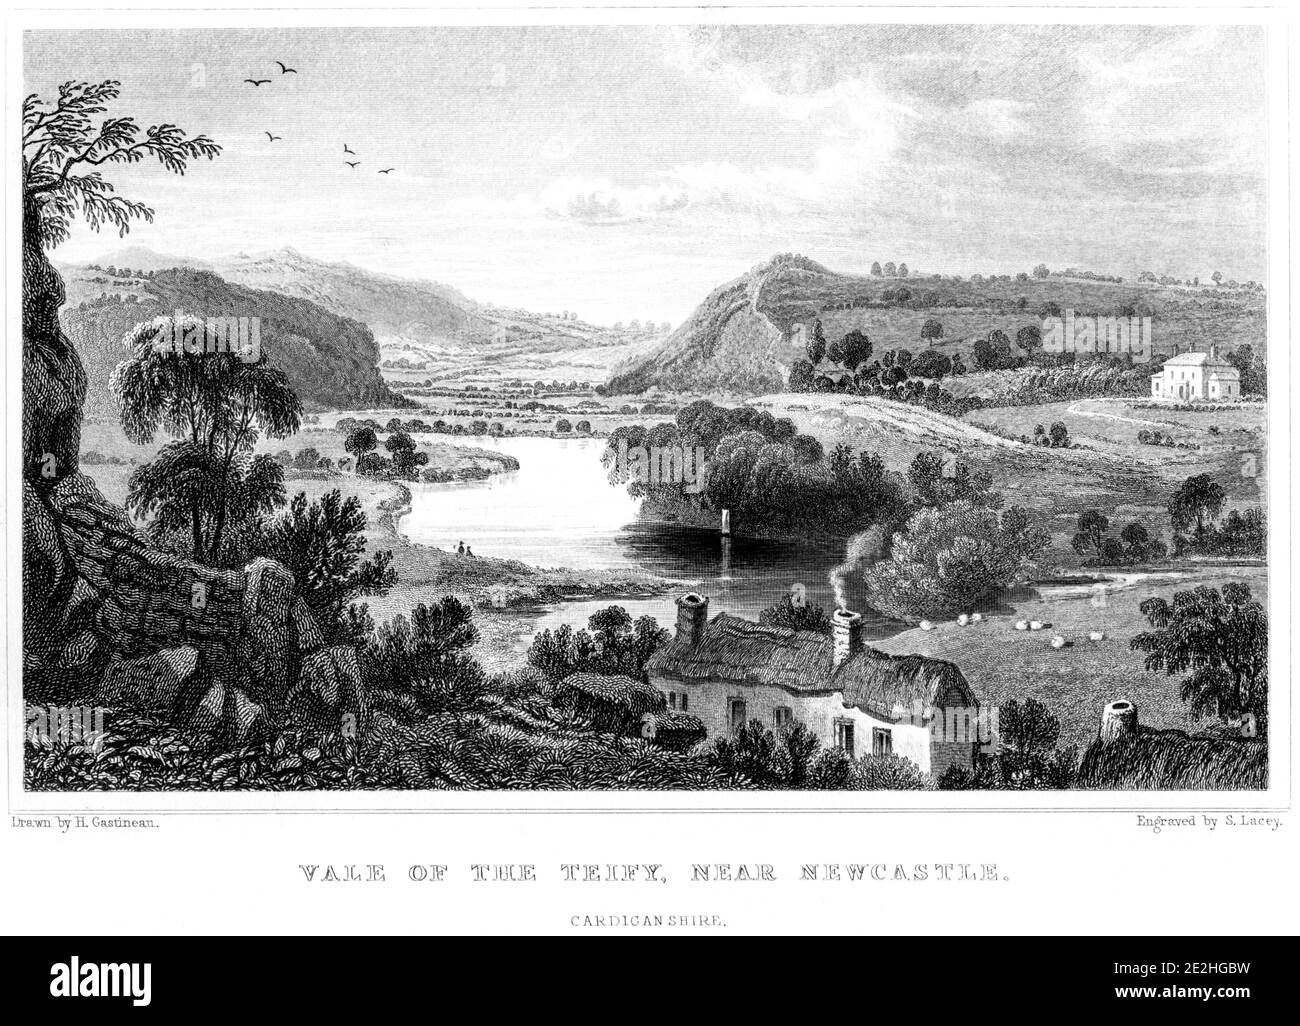 An engraving of the Vale of the Teify near Newcastle (Emlyn), Cardiganshire scanned at high resolution from a book published in 1854. Stock Photo